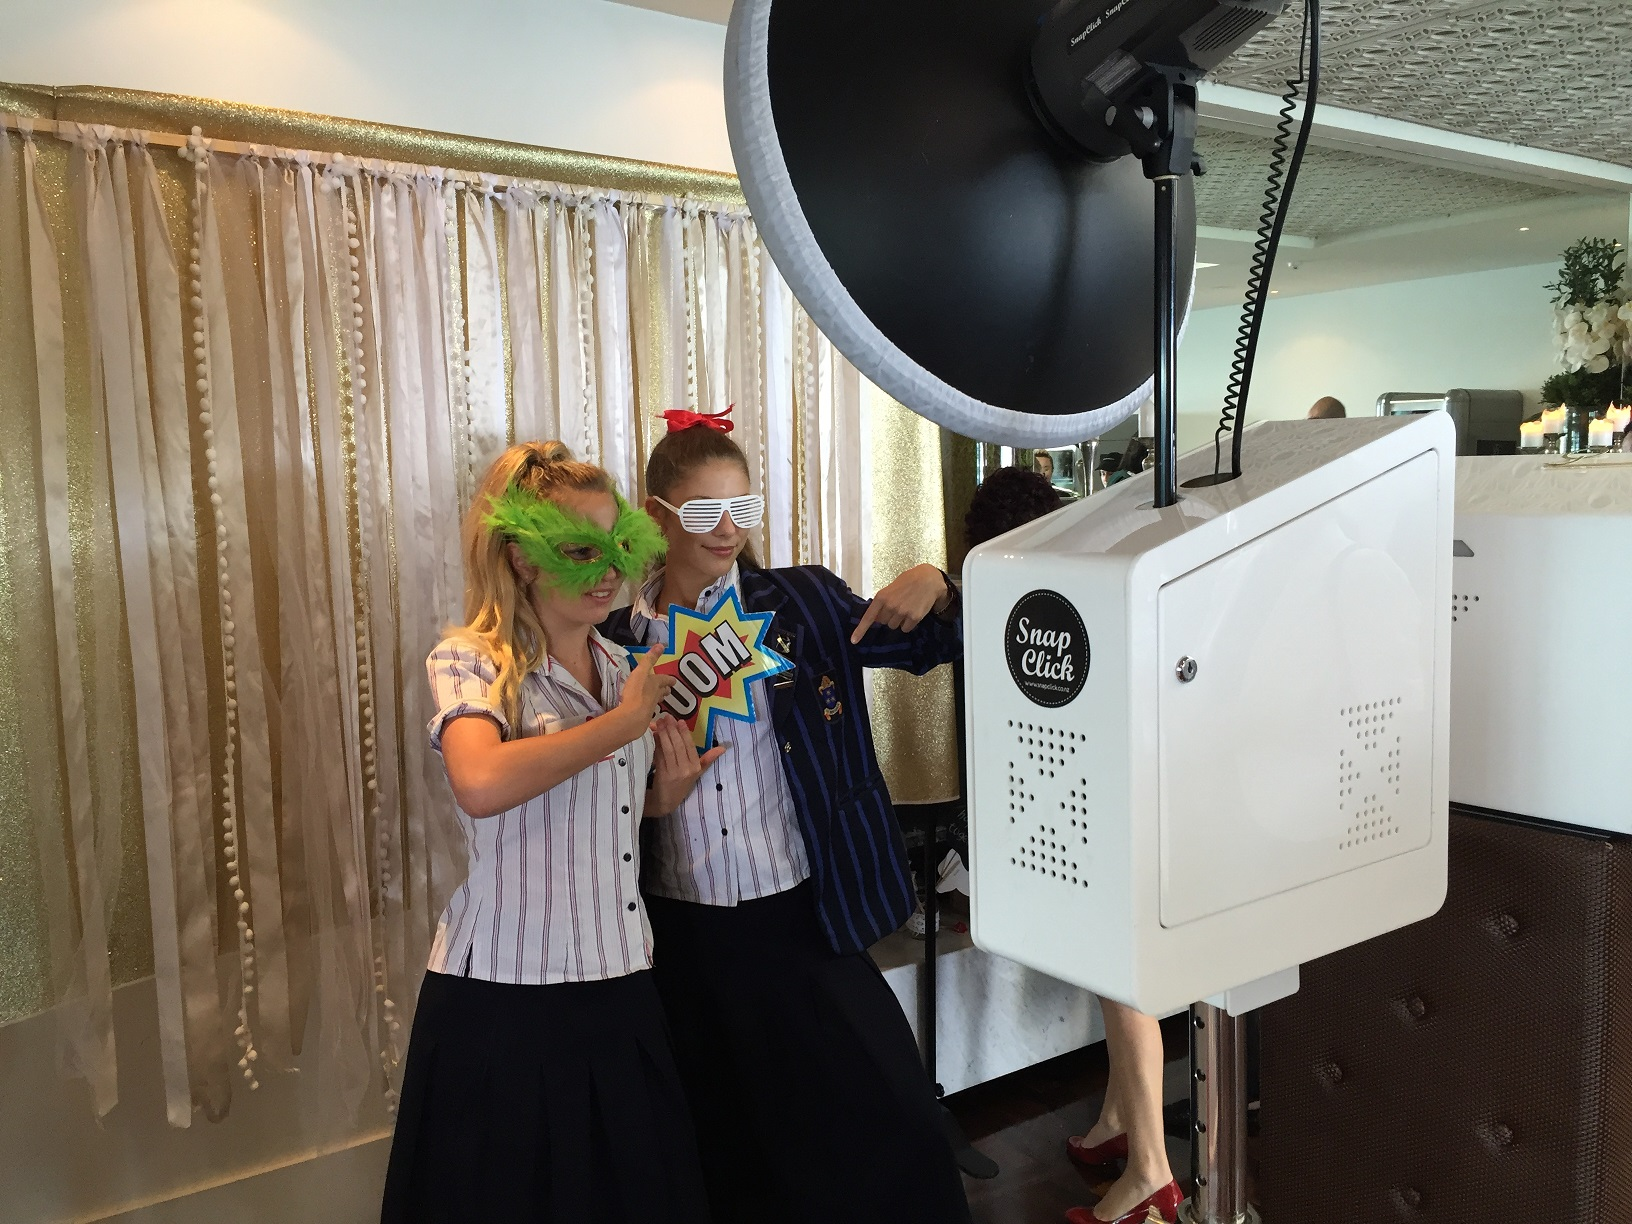 High school students enjoy the event photo booth.